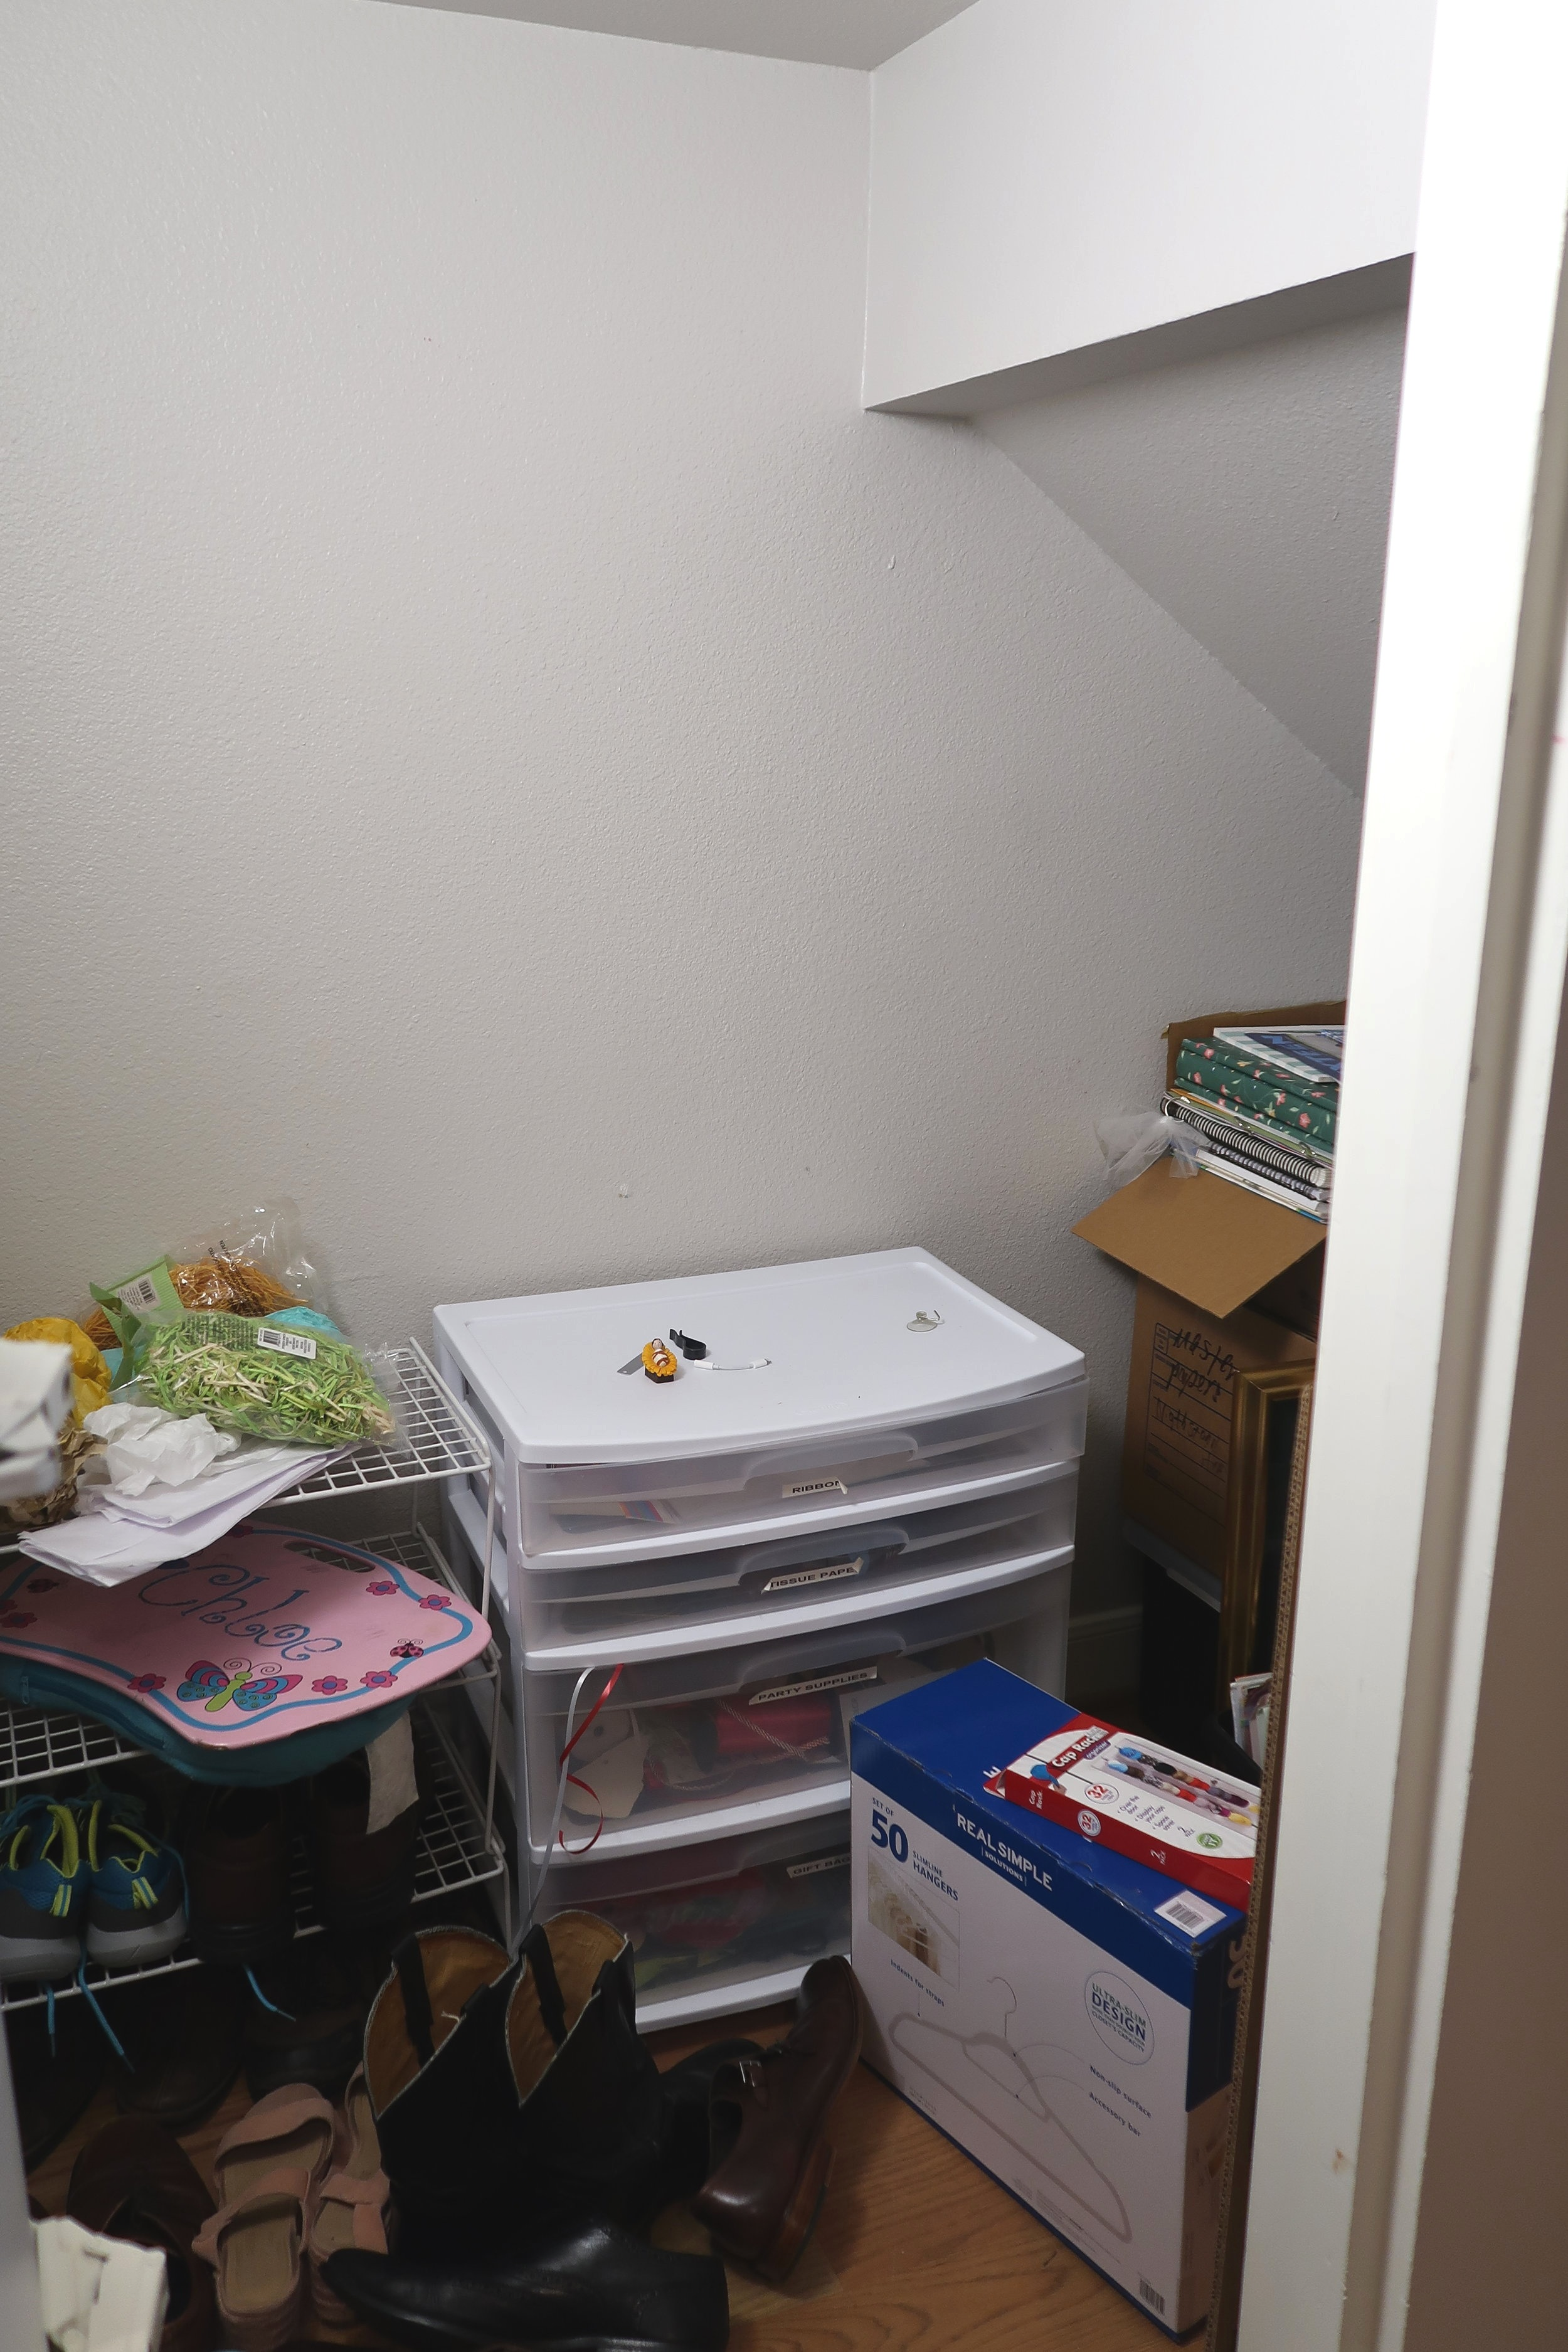 Dottie's Utility Room (Before)